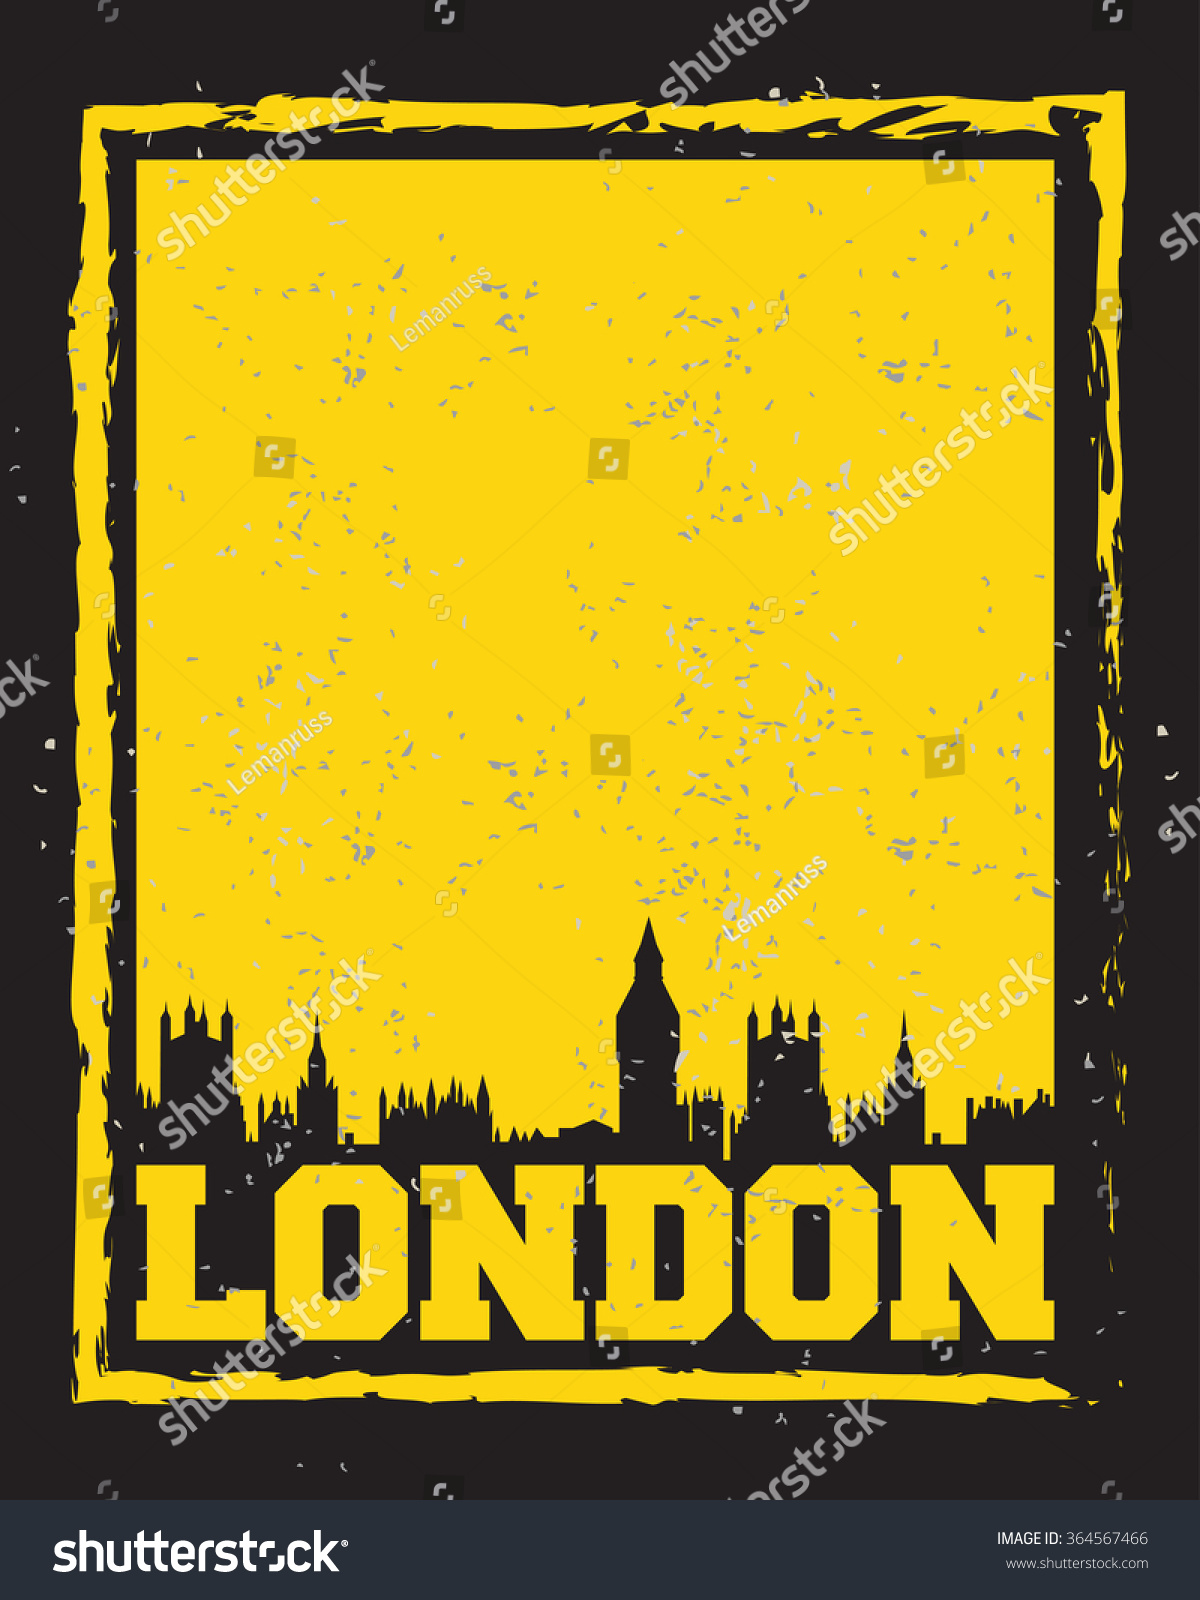 Shirt design london - London City Concept Logo Label Word And Icon Cloud Hipster Style